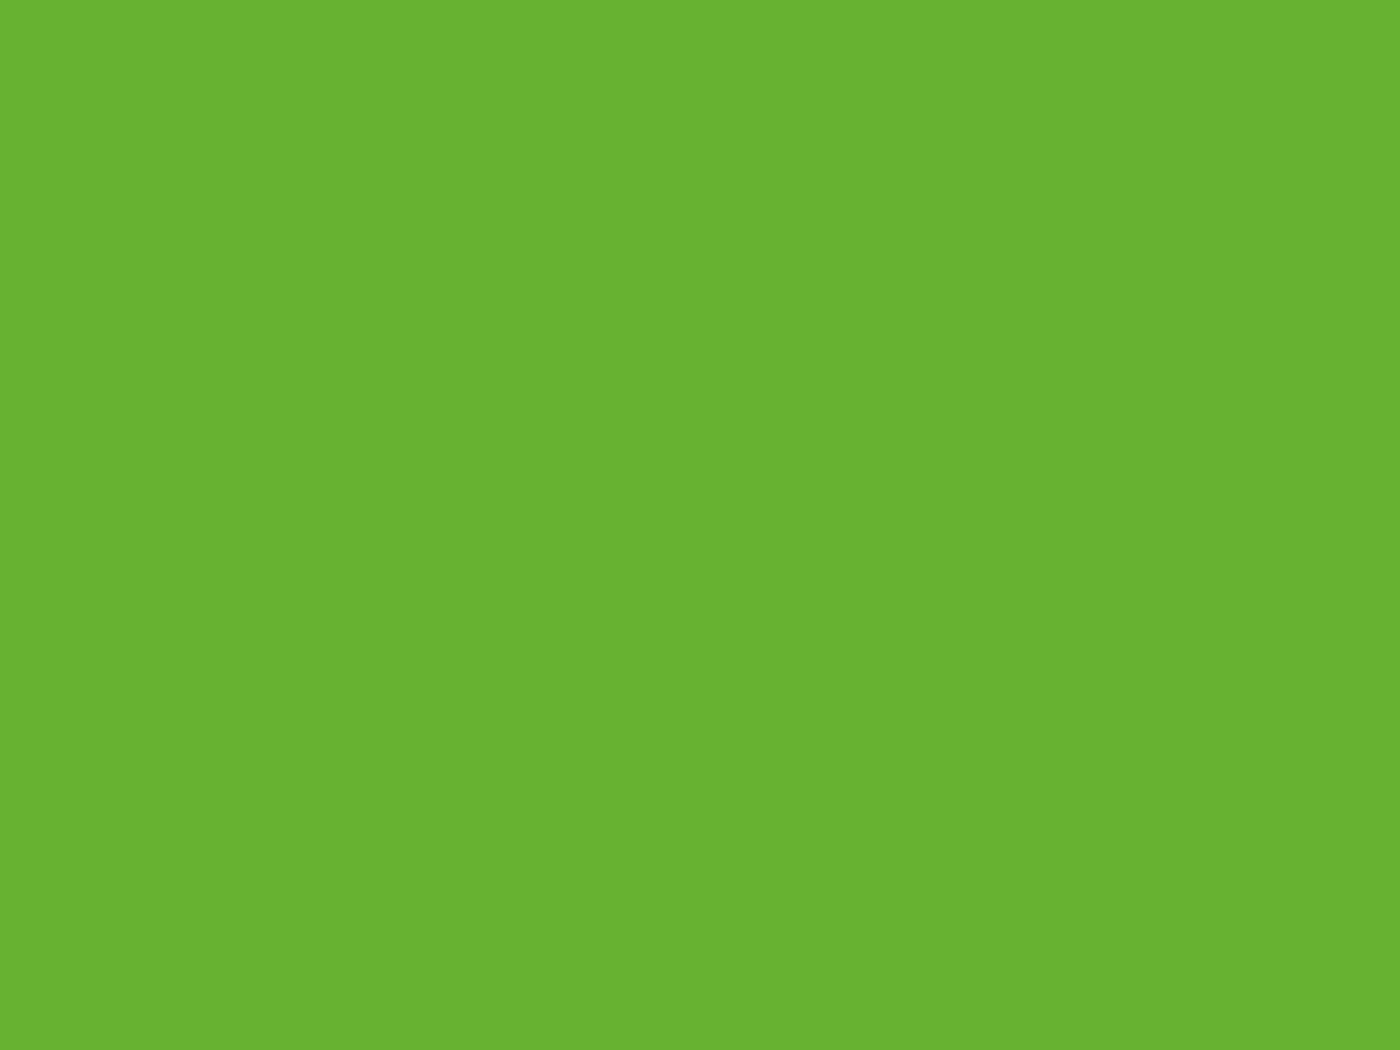 1400x1050 Green RYB Solid Color Background